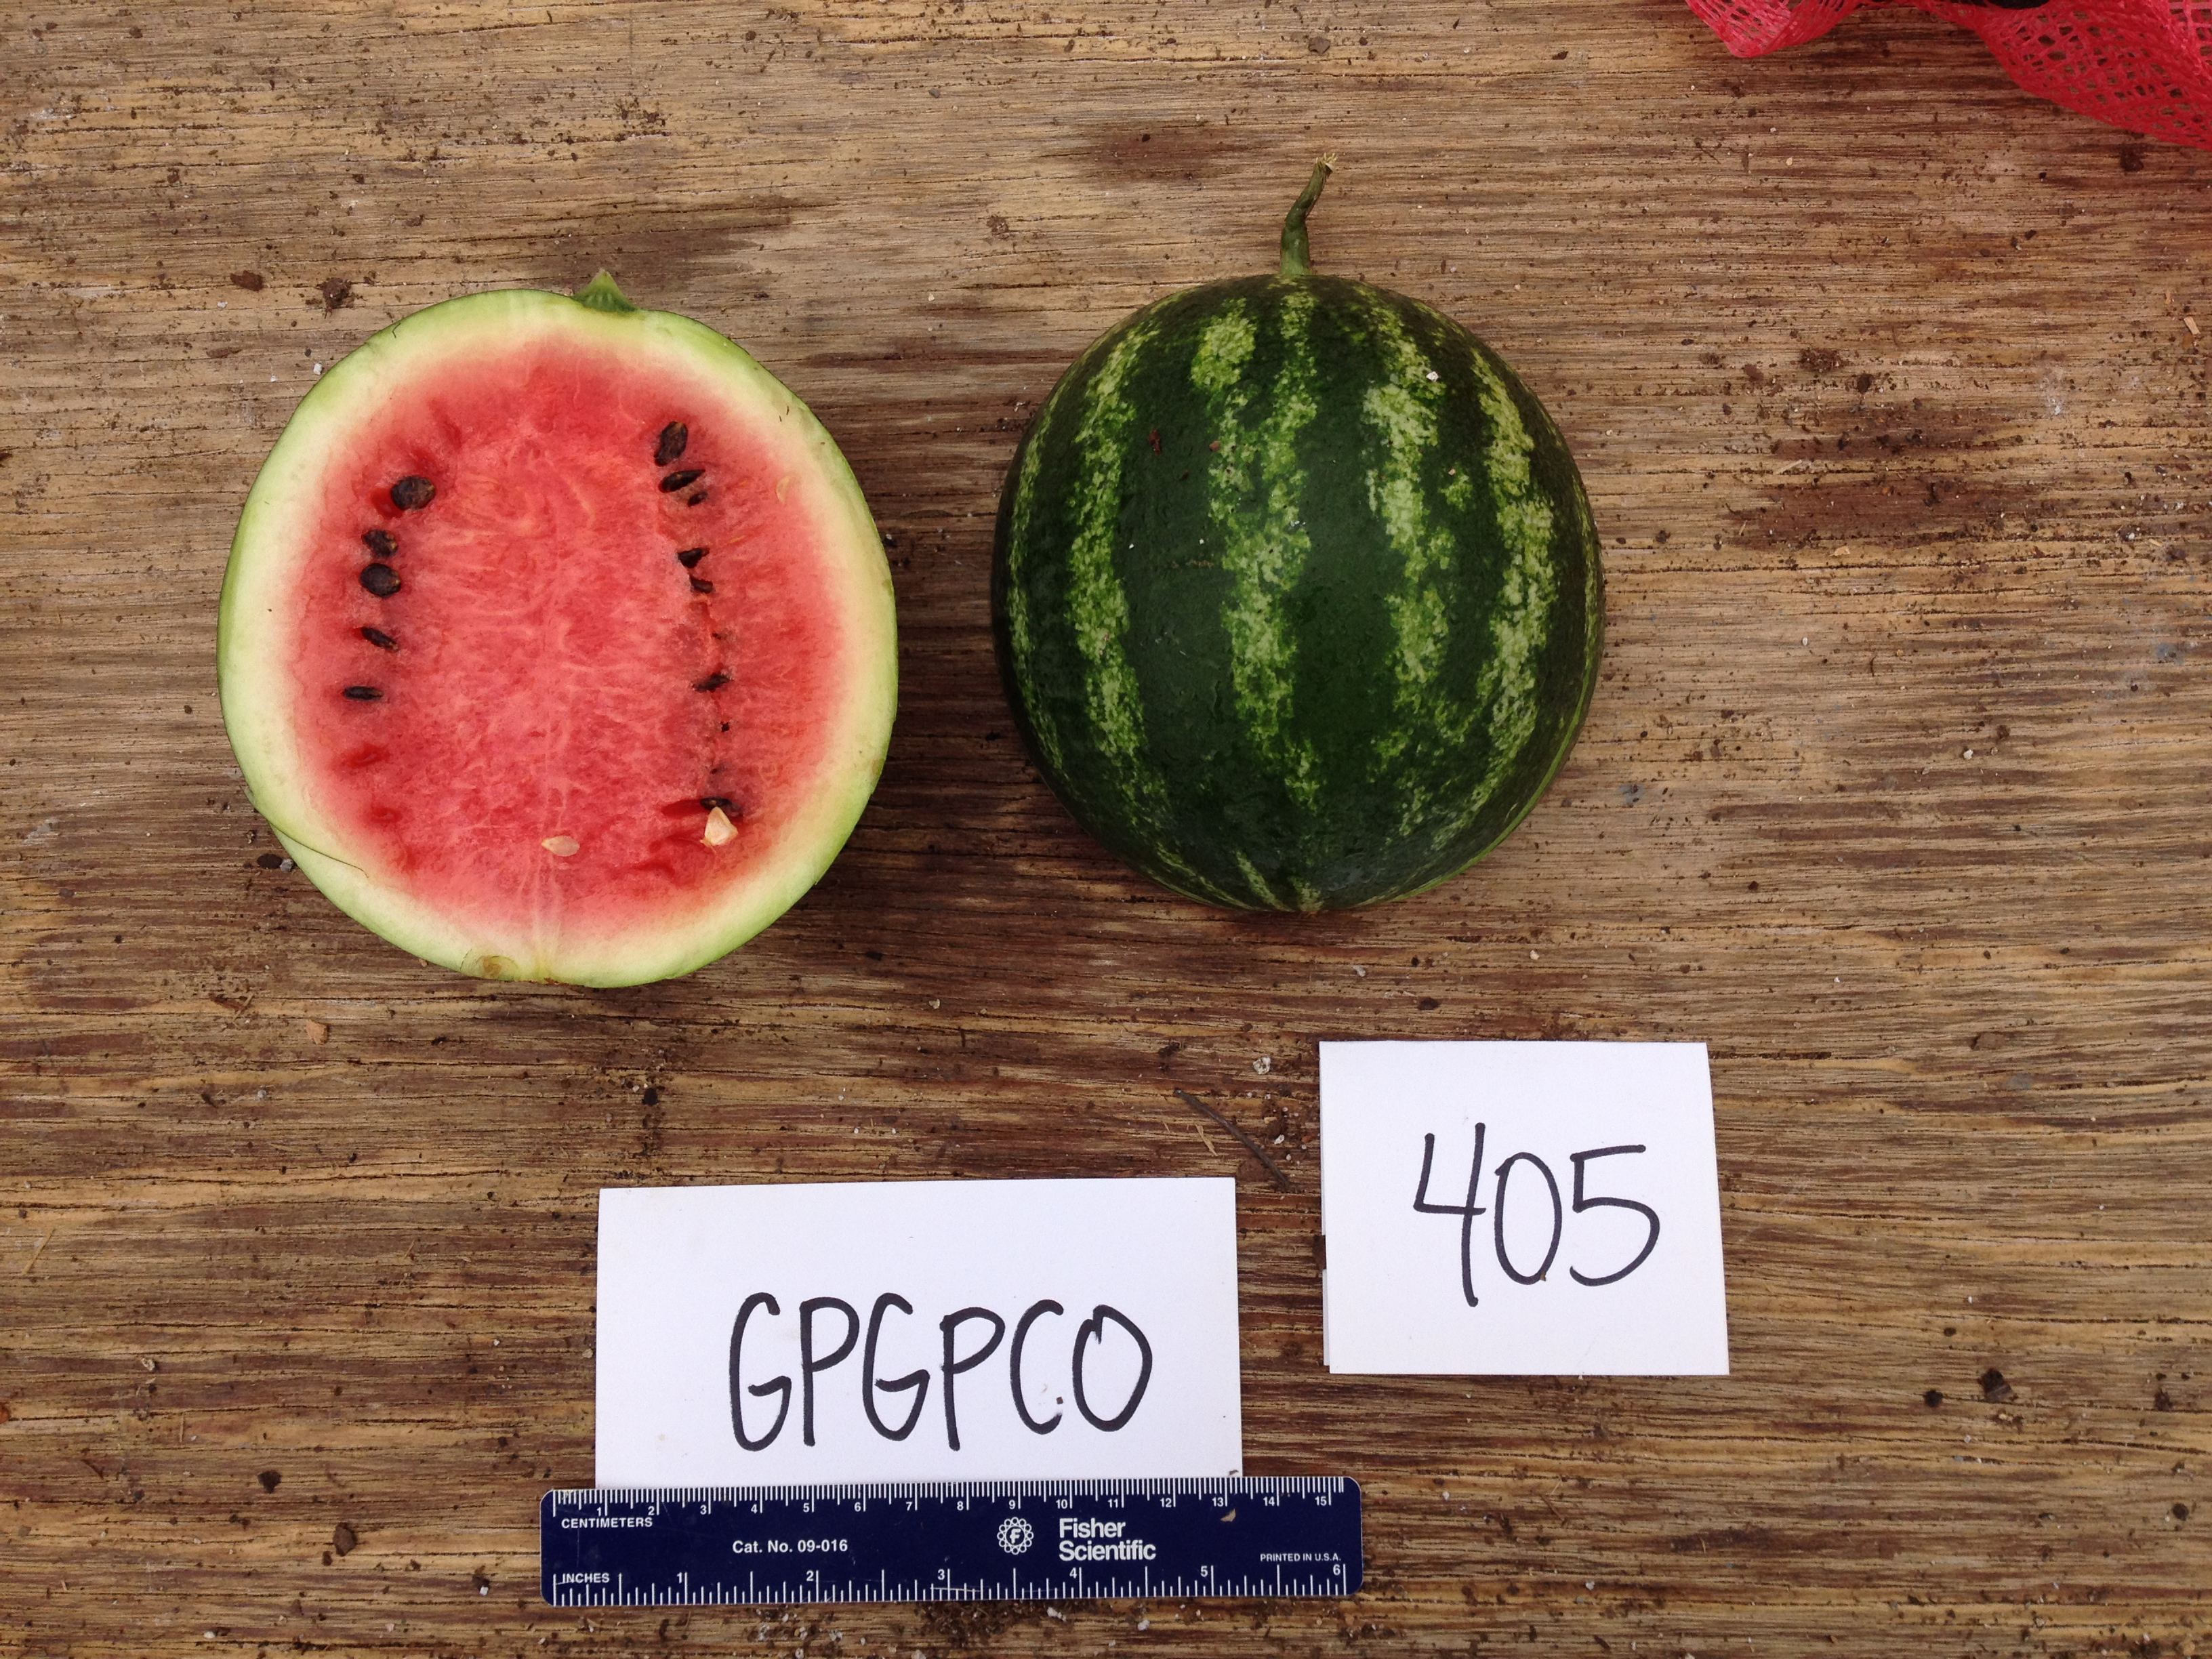 Another contender in UGA graduate student Suzanne Stone's quest to breed a variety of watermelon that works well for organic growers. She is working on producing personal-sized watermelons that have a striking flavor and eye-catching appearance.